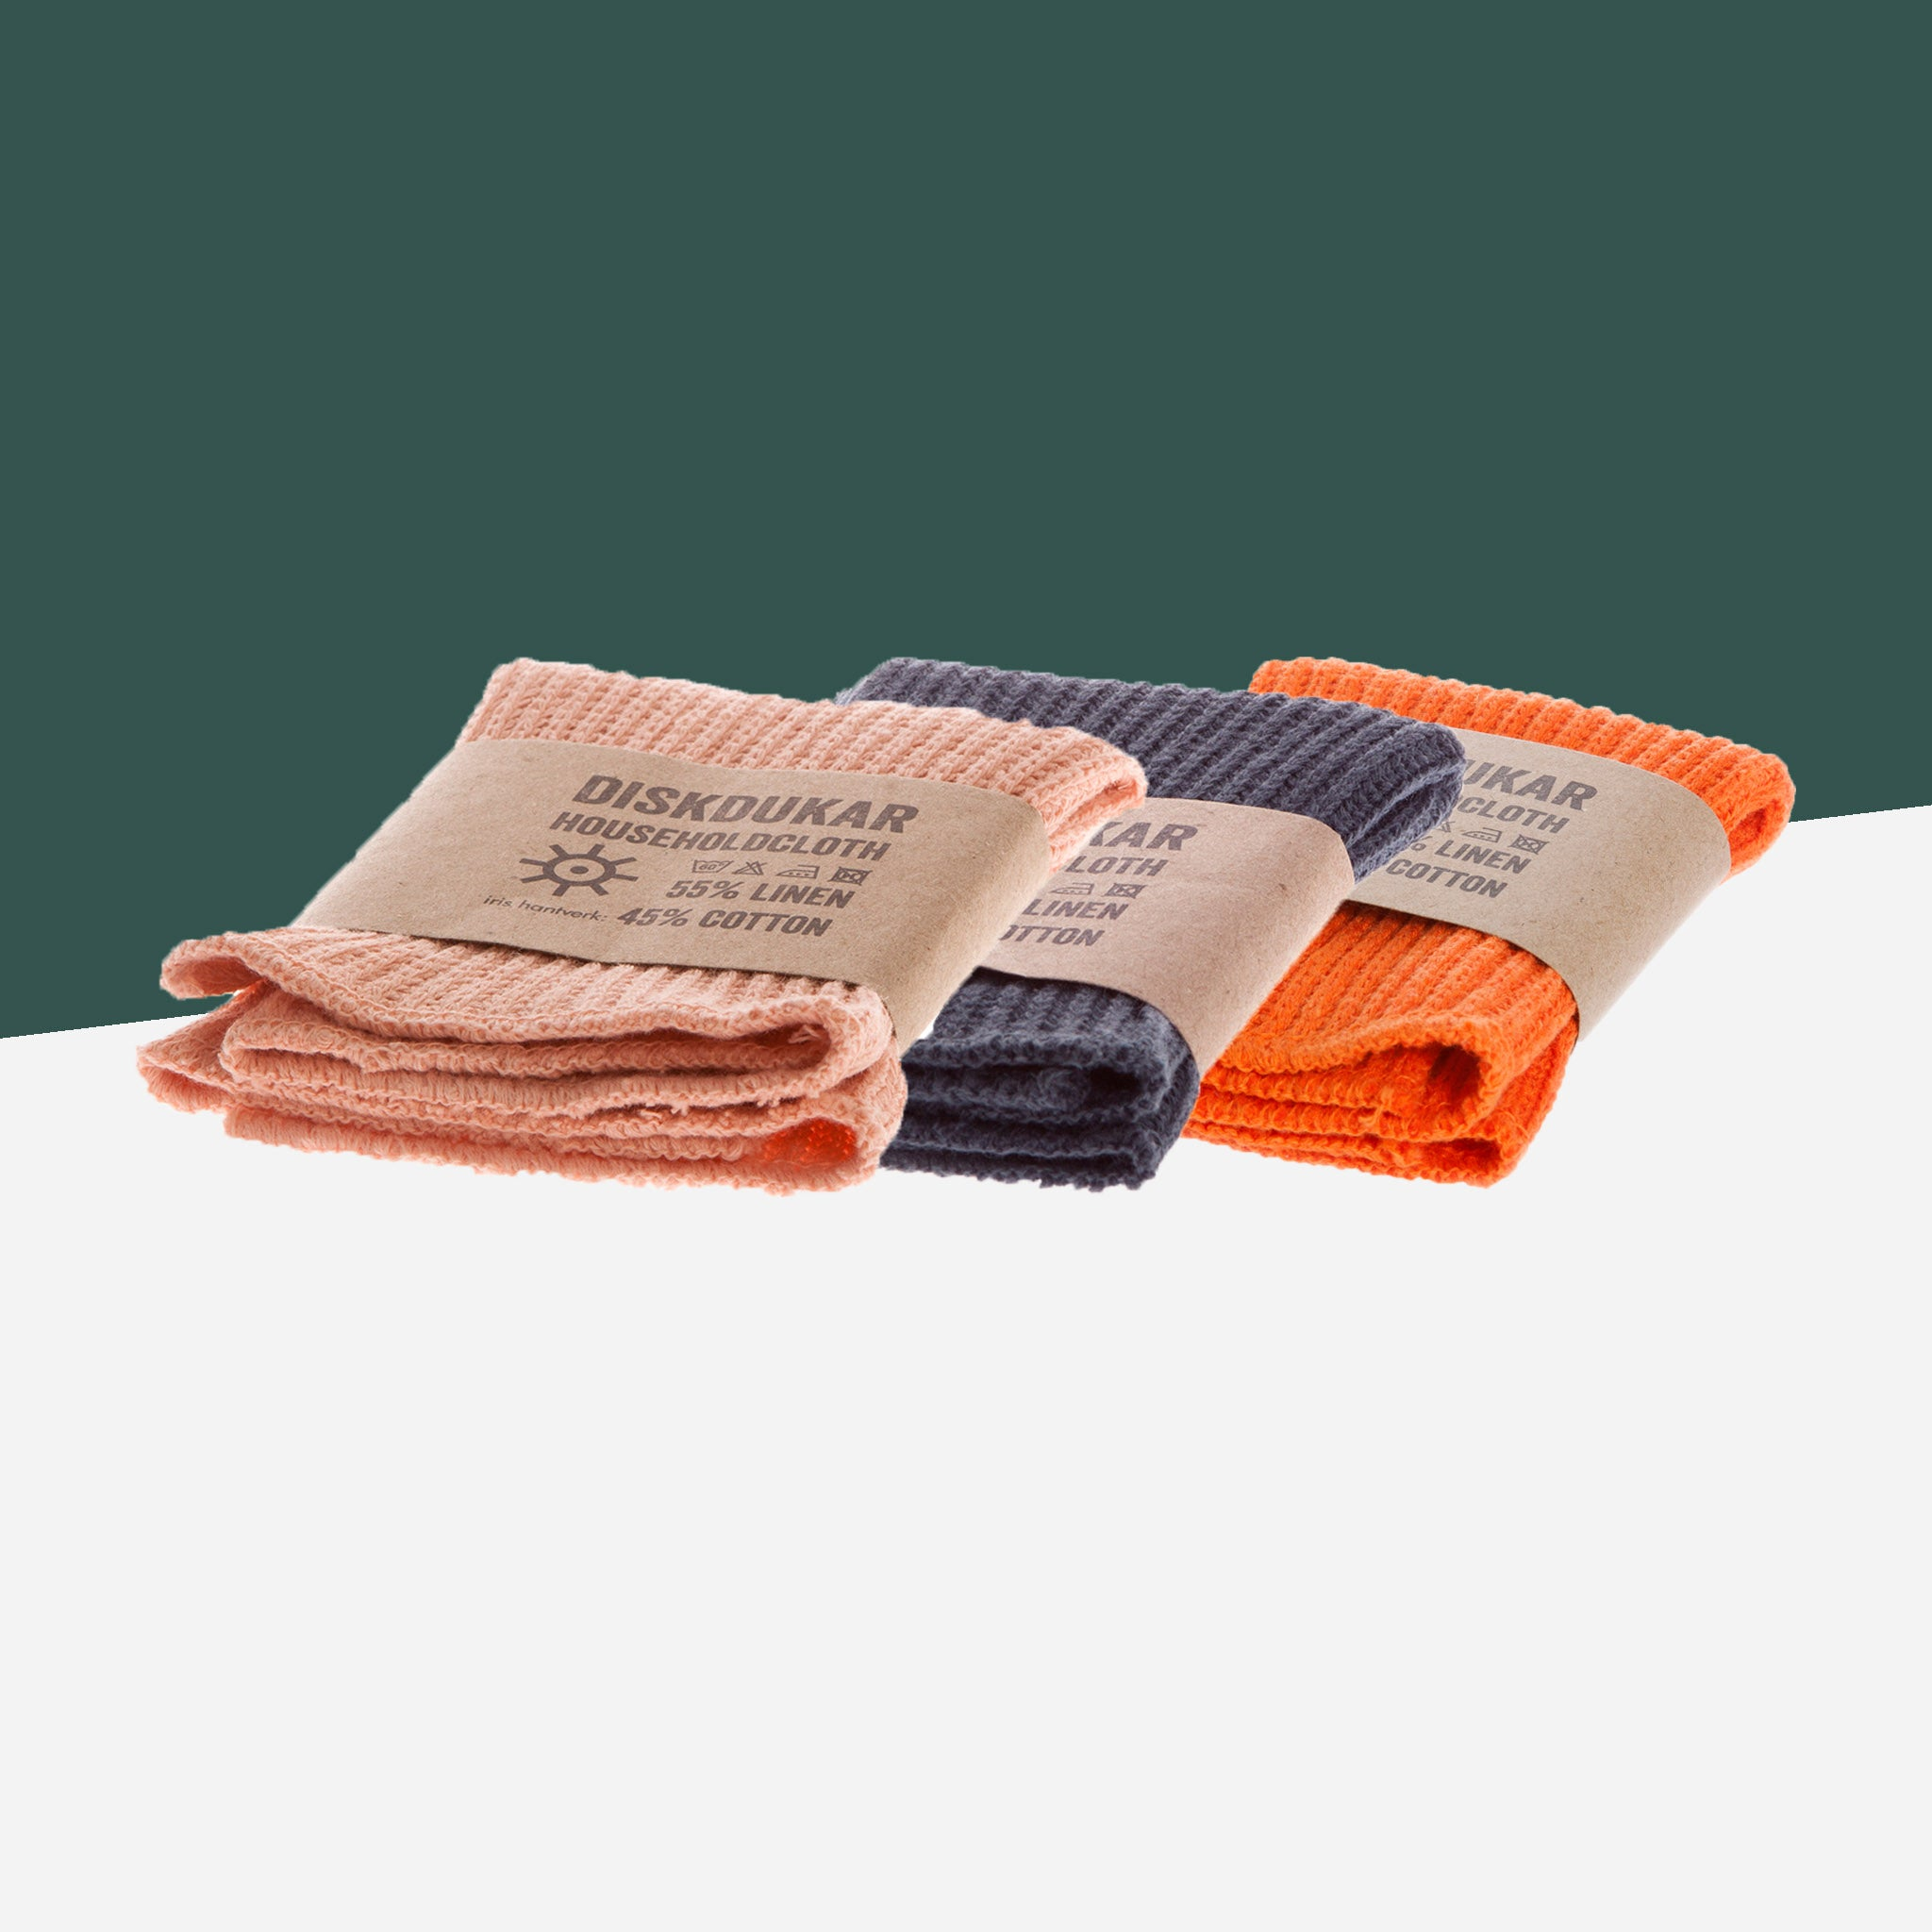 Iris Hantverk Set of Cotton Cloths - White Space Home